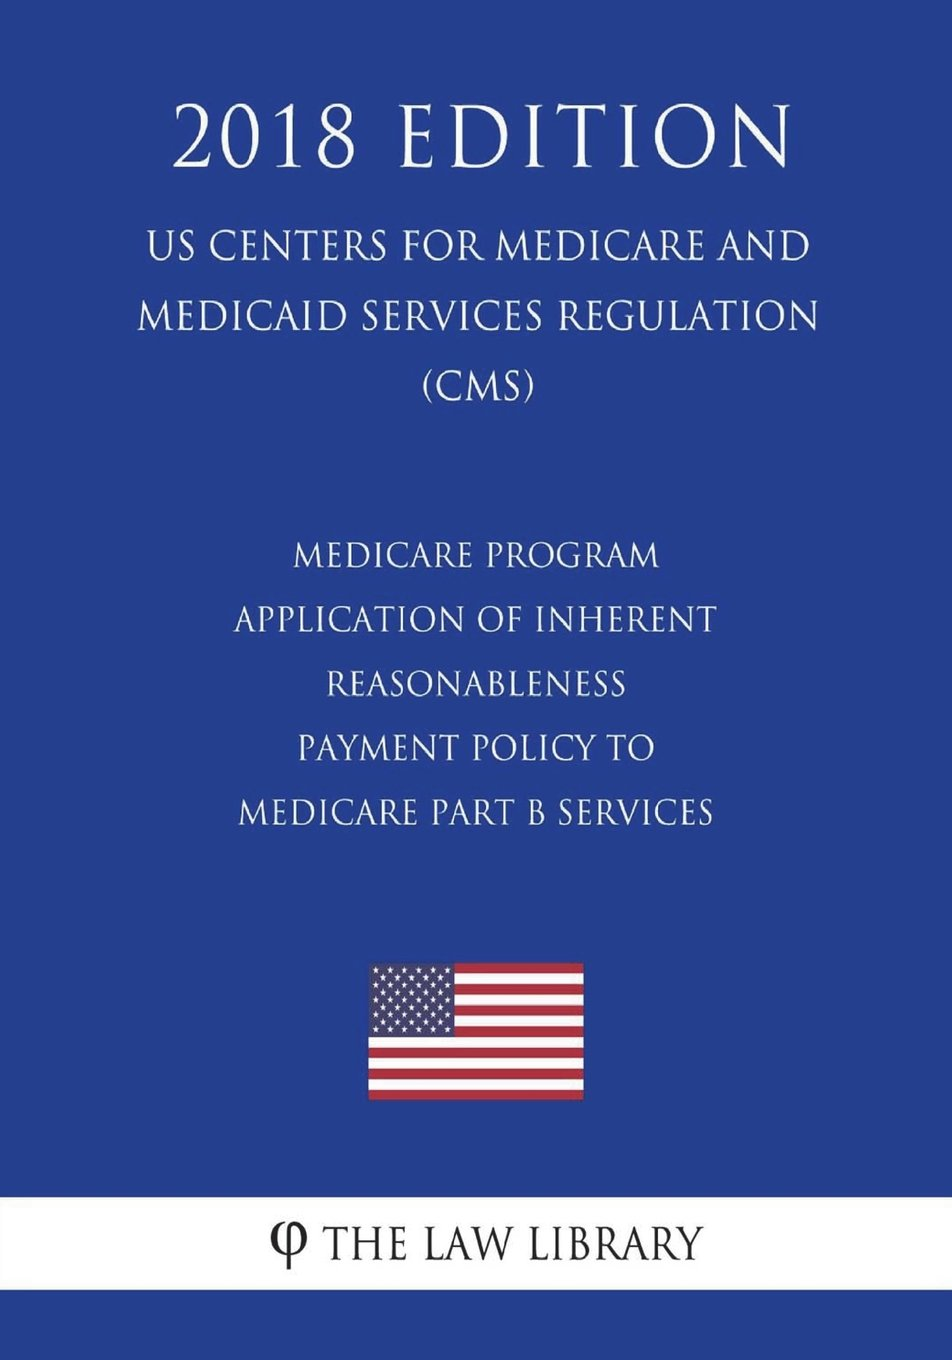 Medicare Program - Application of Inherent Reasonableness Payment Policy to Medicare Part B Services (Other Than Physician Services) (US Centers for ... Services Regulation) (CMS) (2018 Edition) pdf